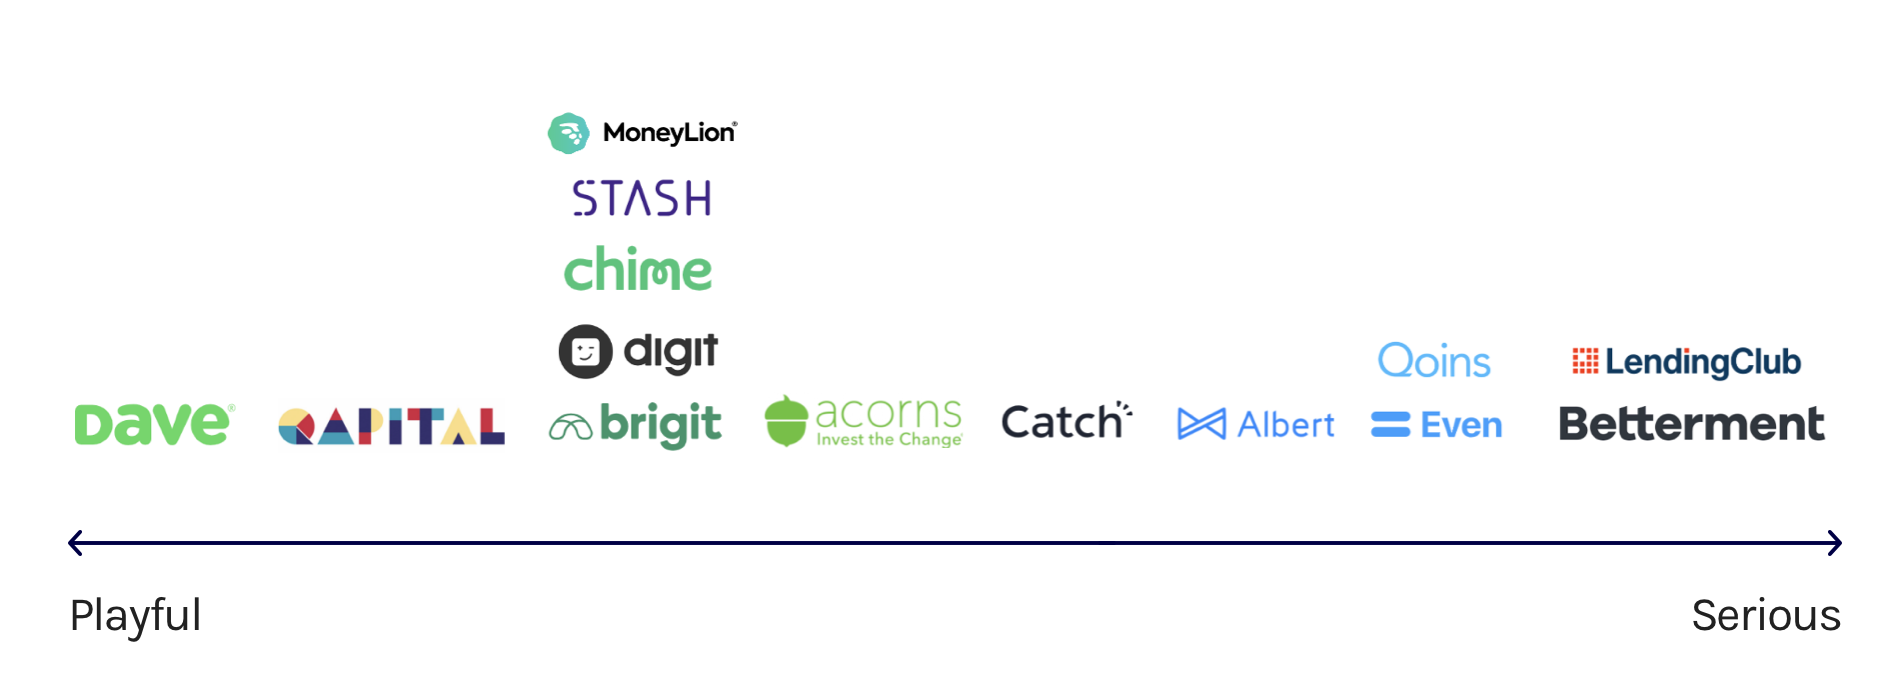 """A spectrum from """"playful"""" to """"serious,"""" showing where other financial tech competitors lie."""